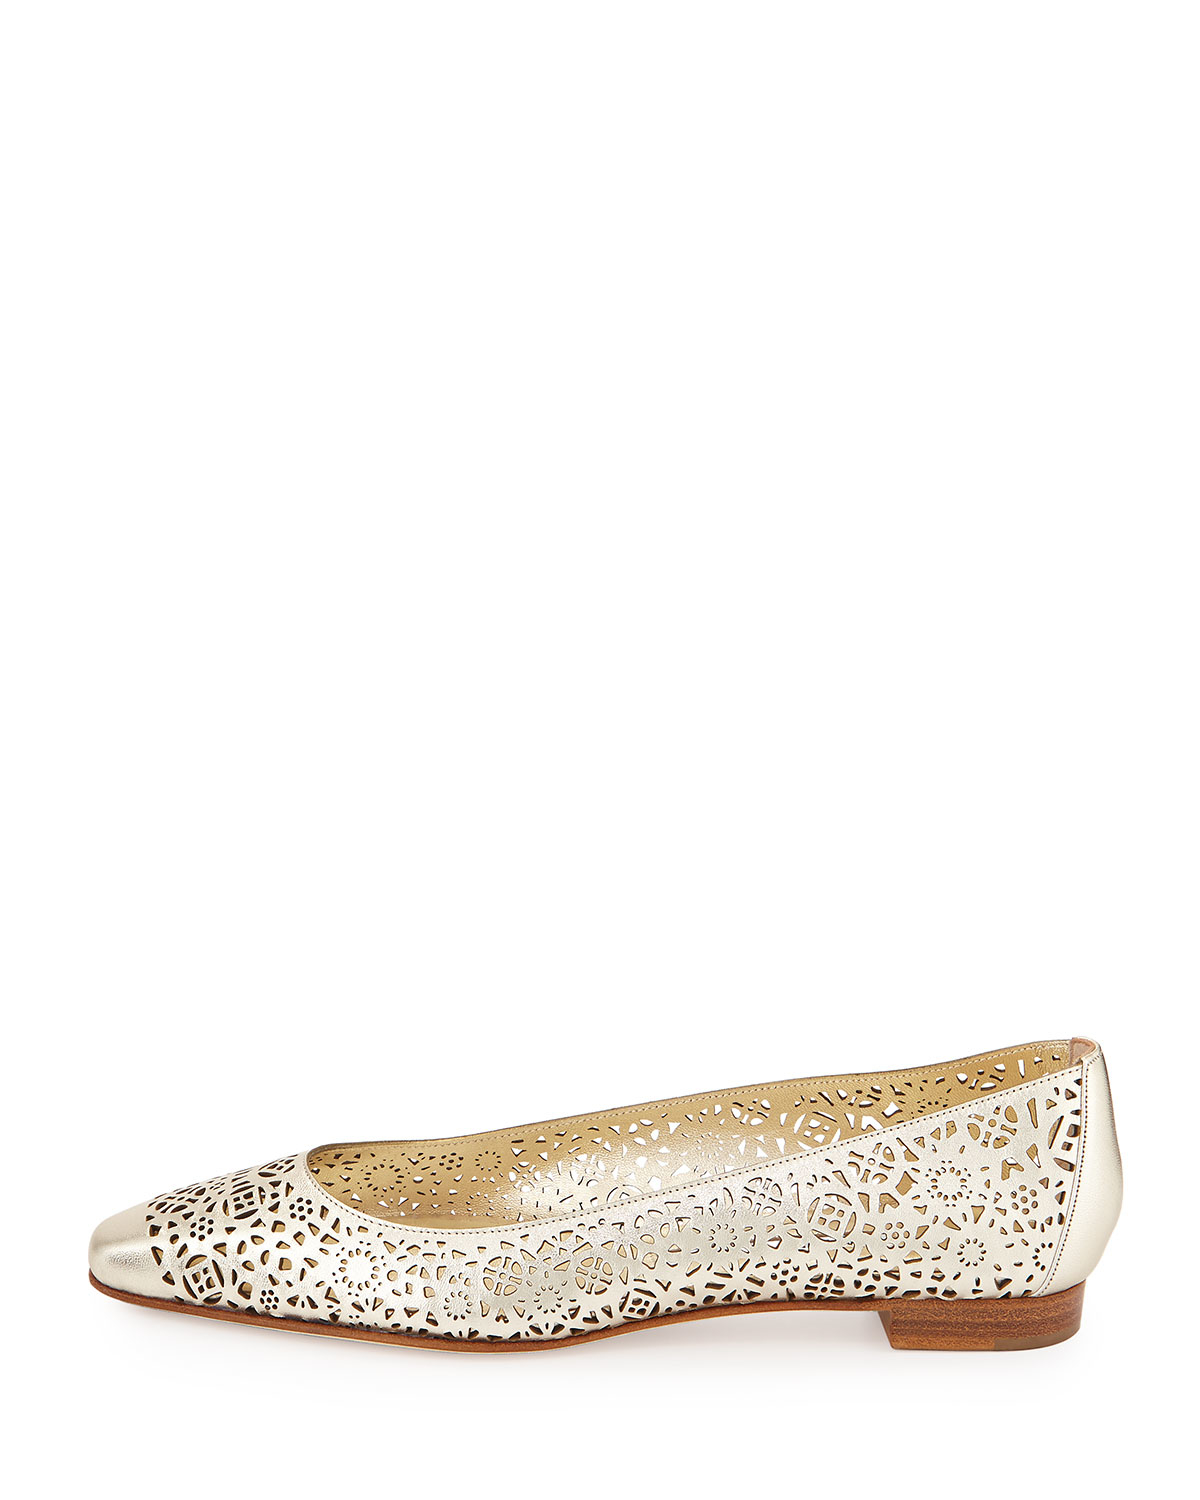 manolo blahnik black and white wingtip flats